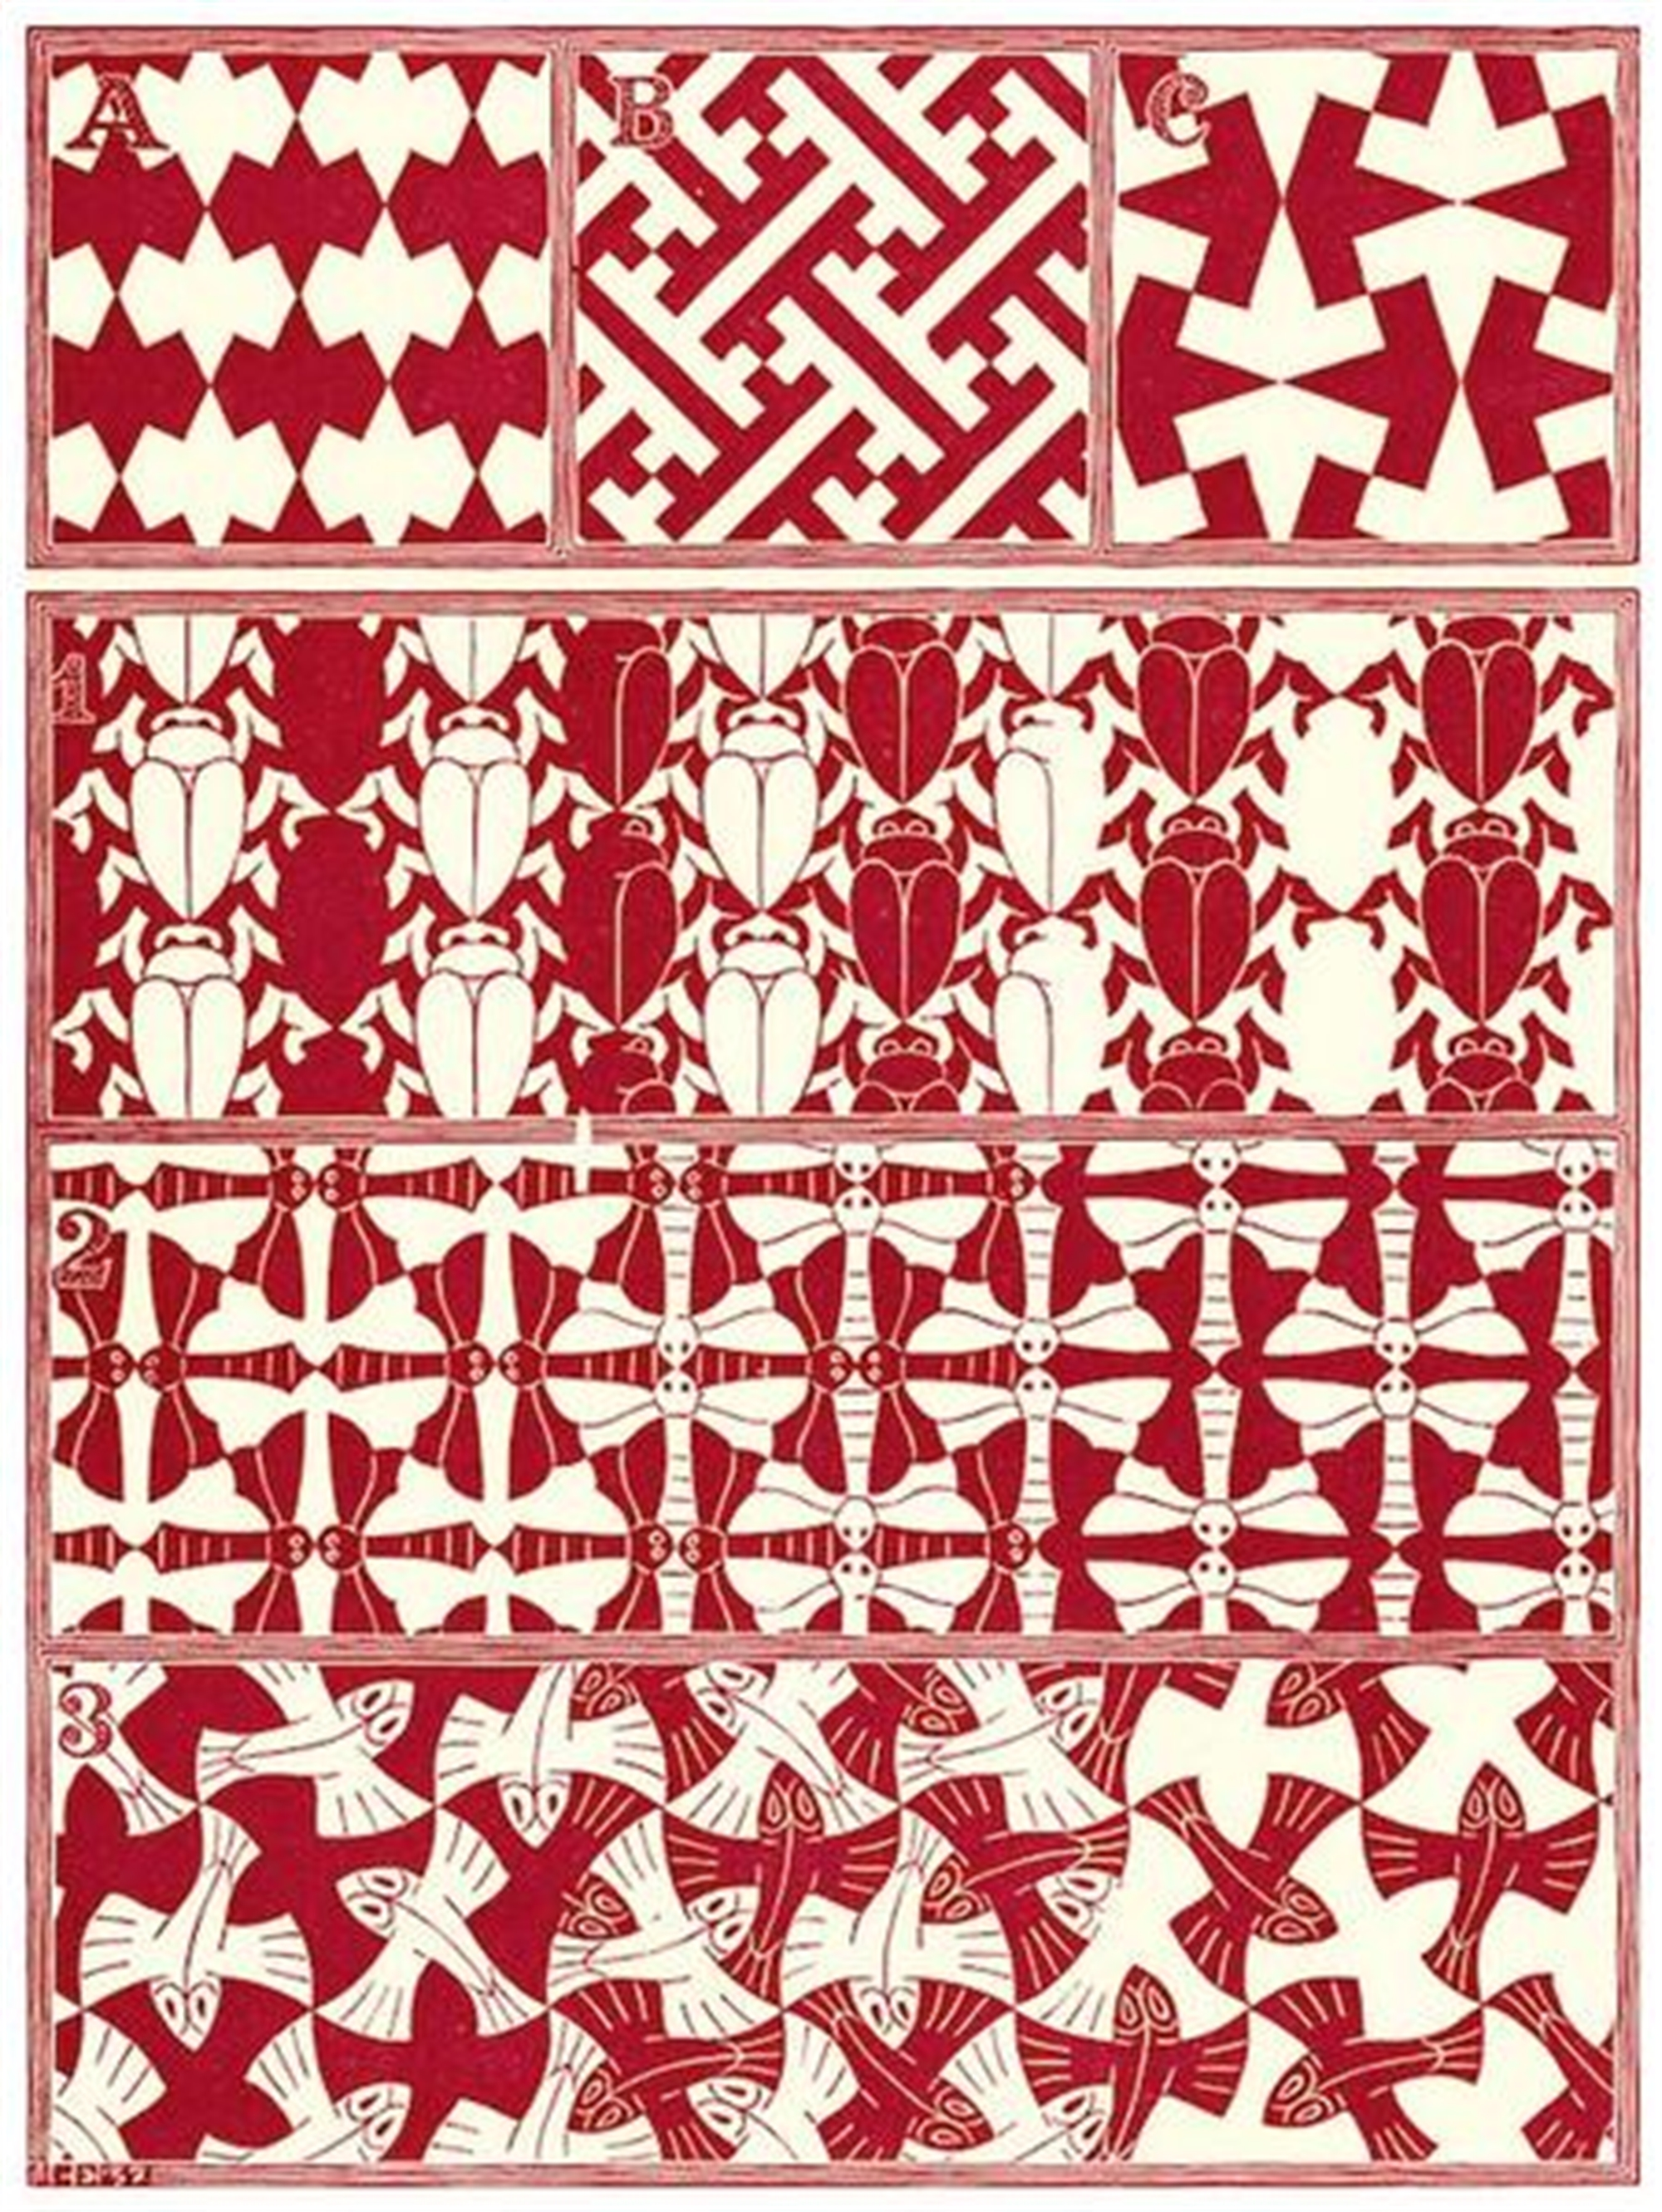 Regular Division of the Plane II Red by M.C. Escher